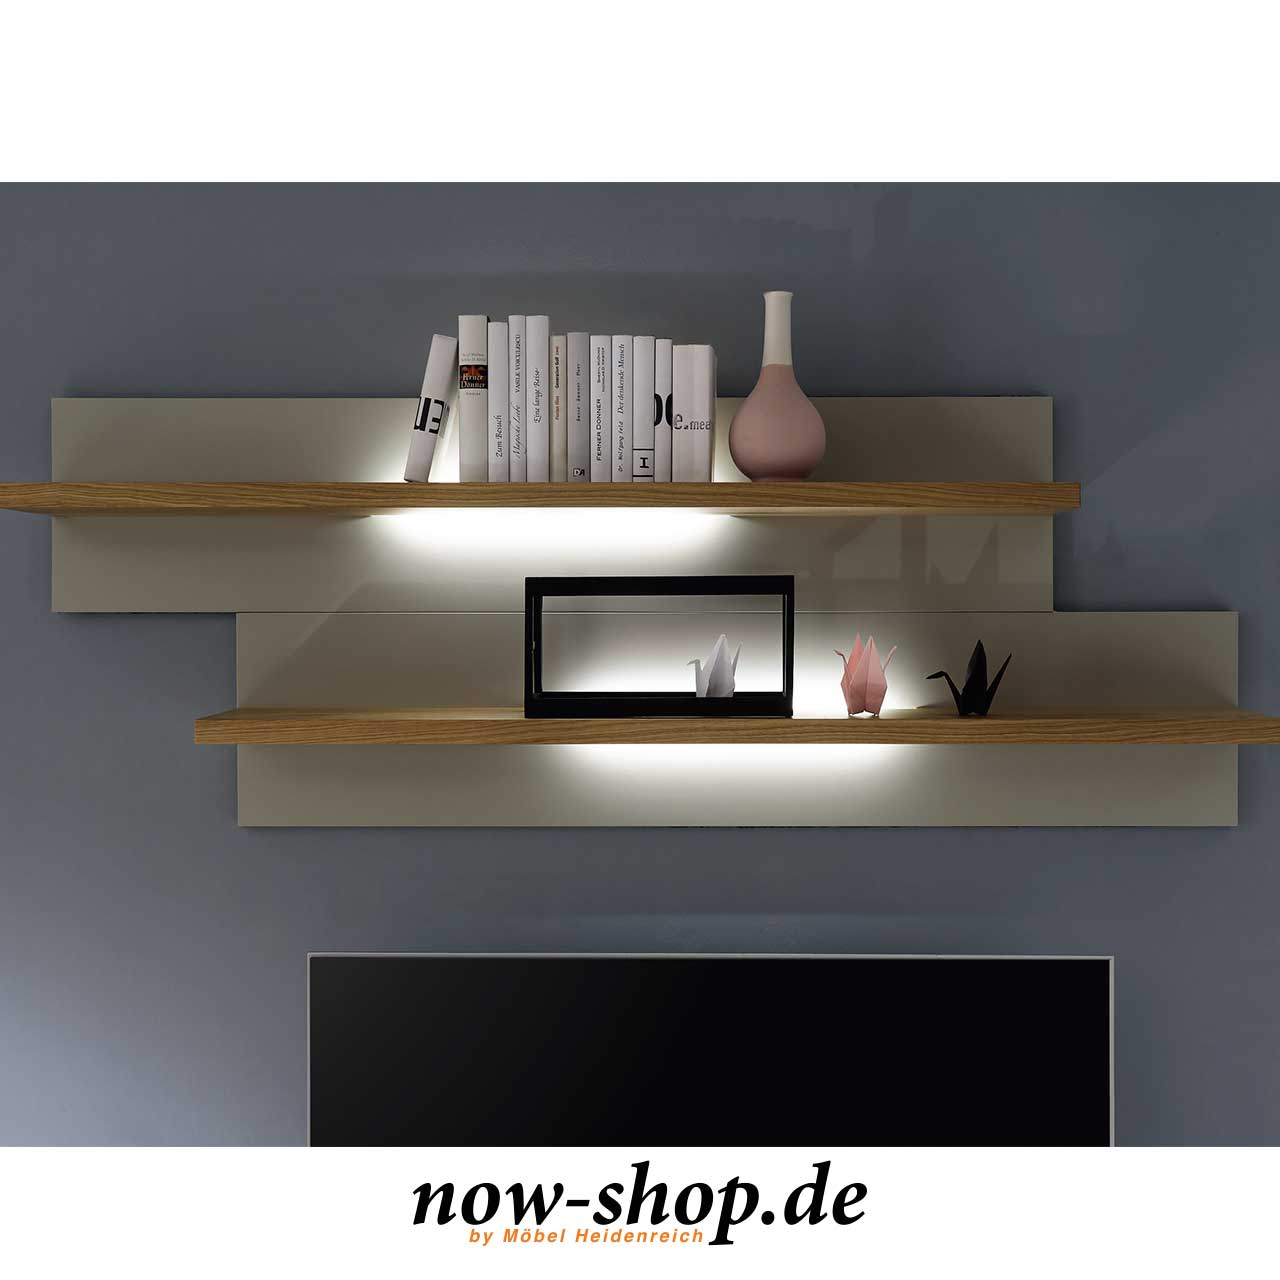 led beleuchtung f r now time vitrinen now shop. Black Bedroom Furniture Sets. Home Design Ideas